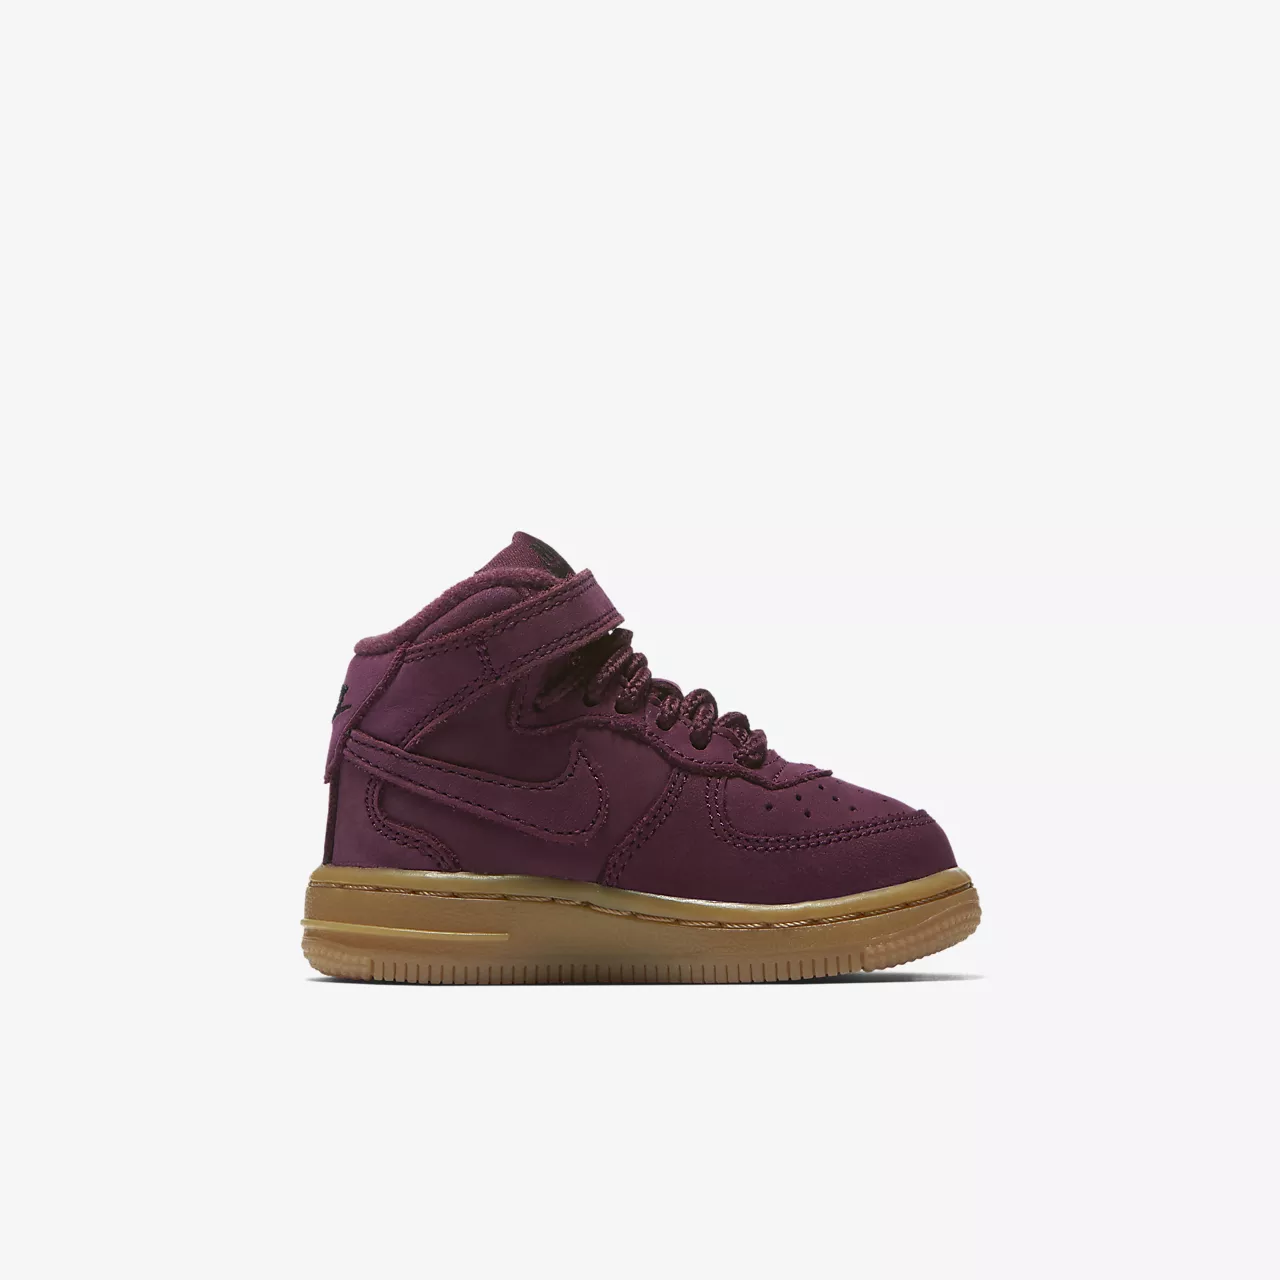 Nike Air Force 1 Mid WB Infant/Toddler Shoe AH0757-600